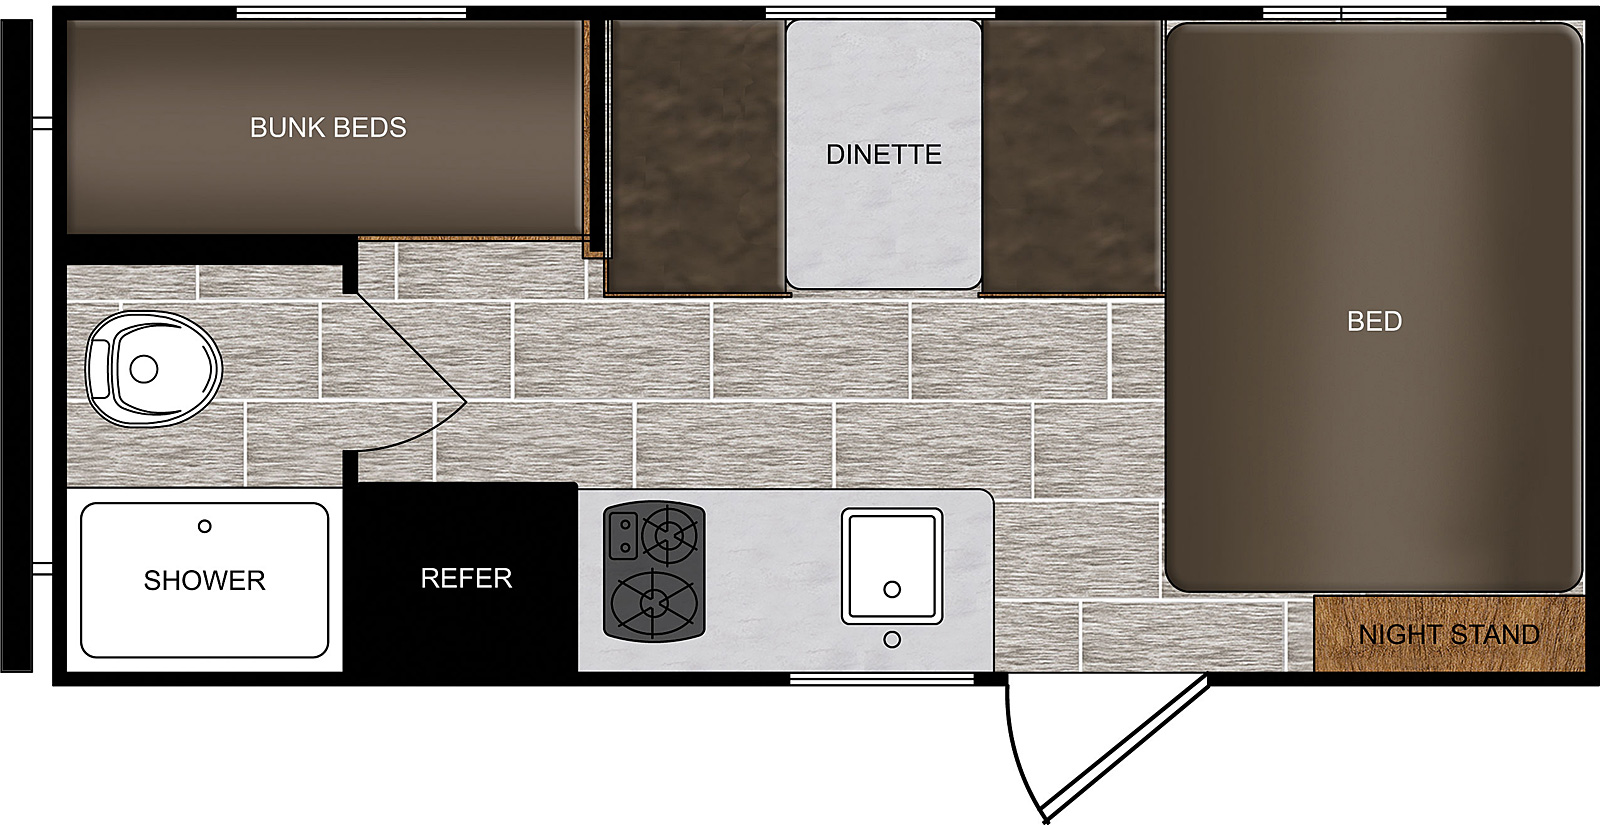 prime time avenger travel trailer floor plan